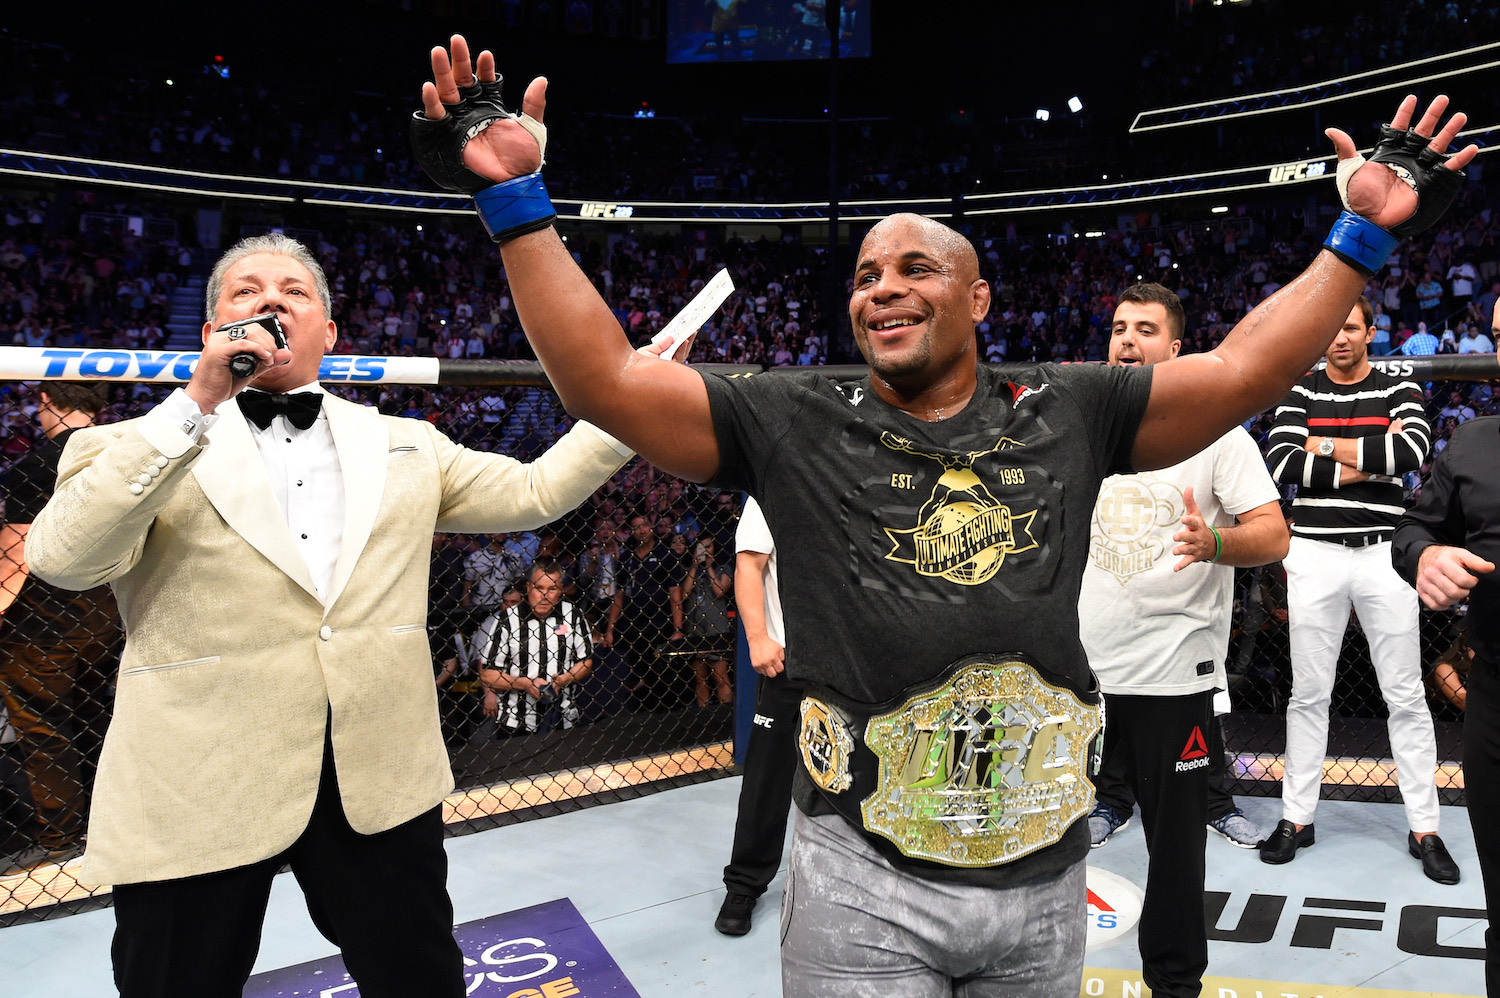 Daniel Cormier Just Revealed His Future Plans After Trilogy Fight with Stipe Miocic